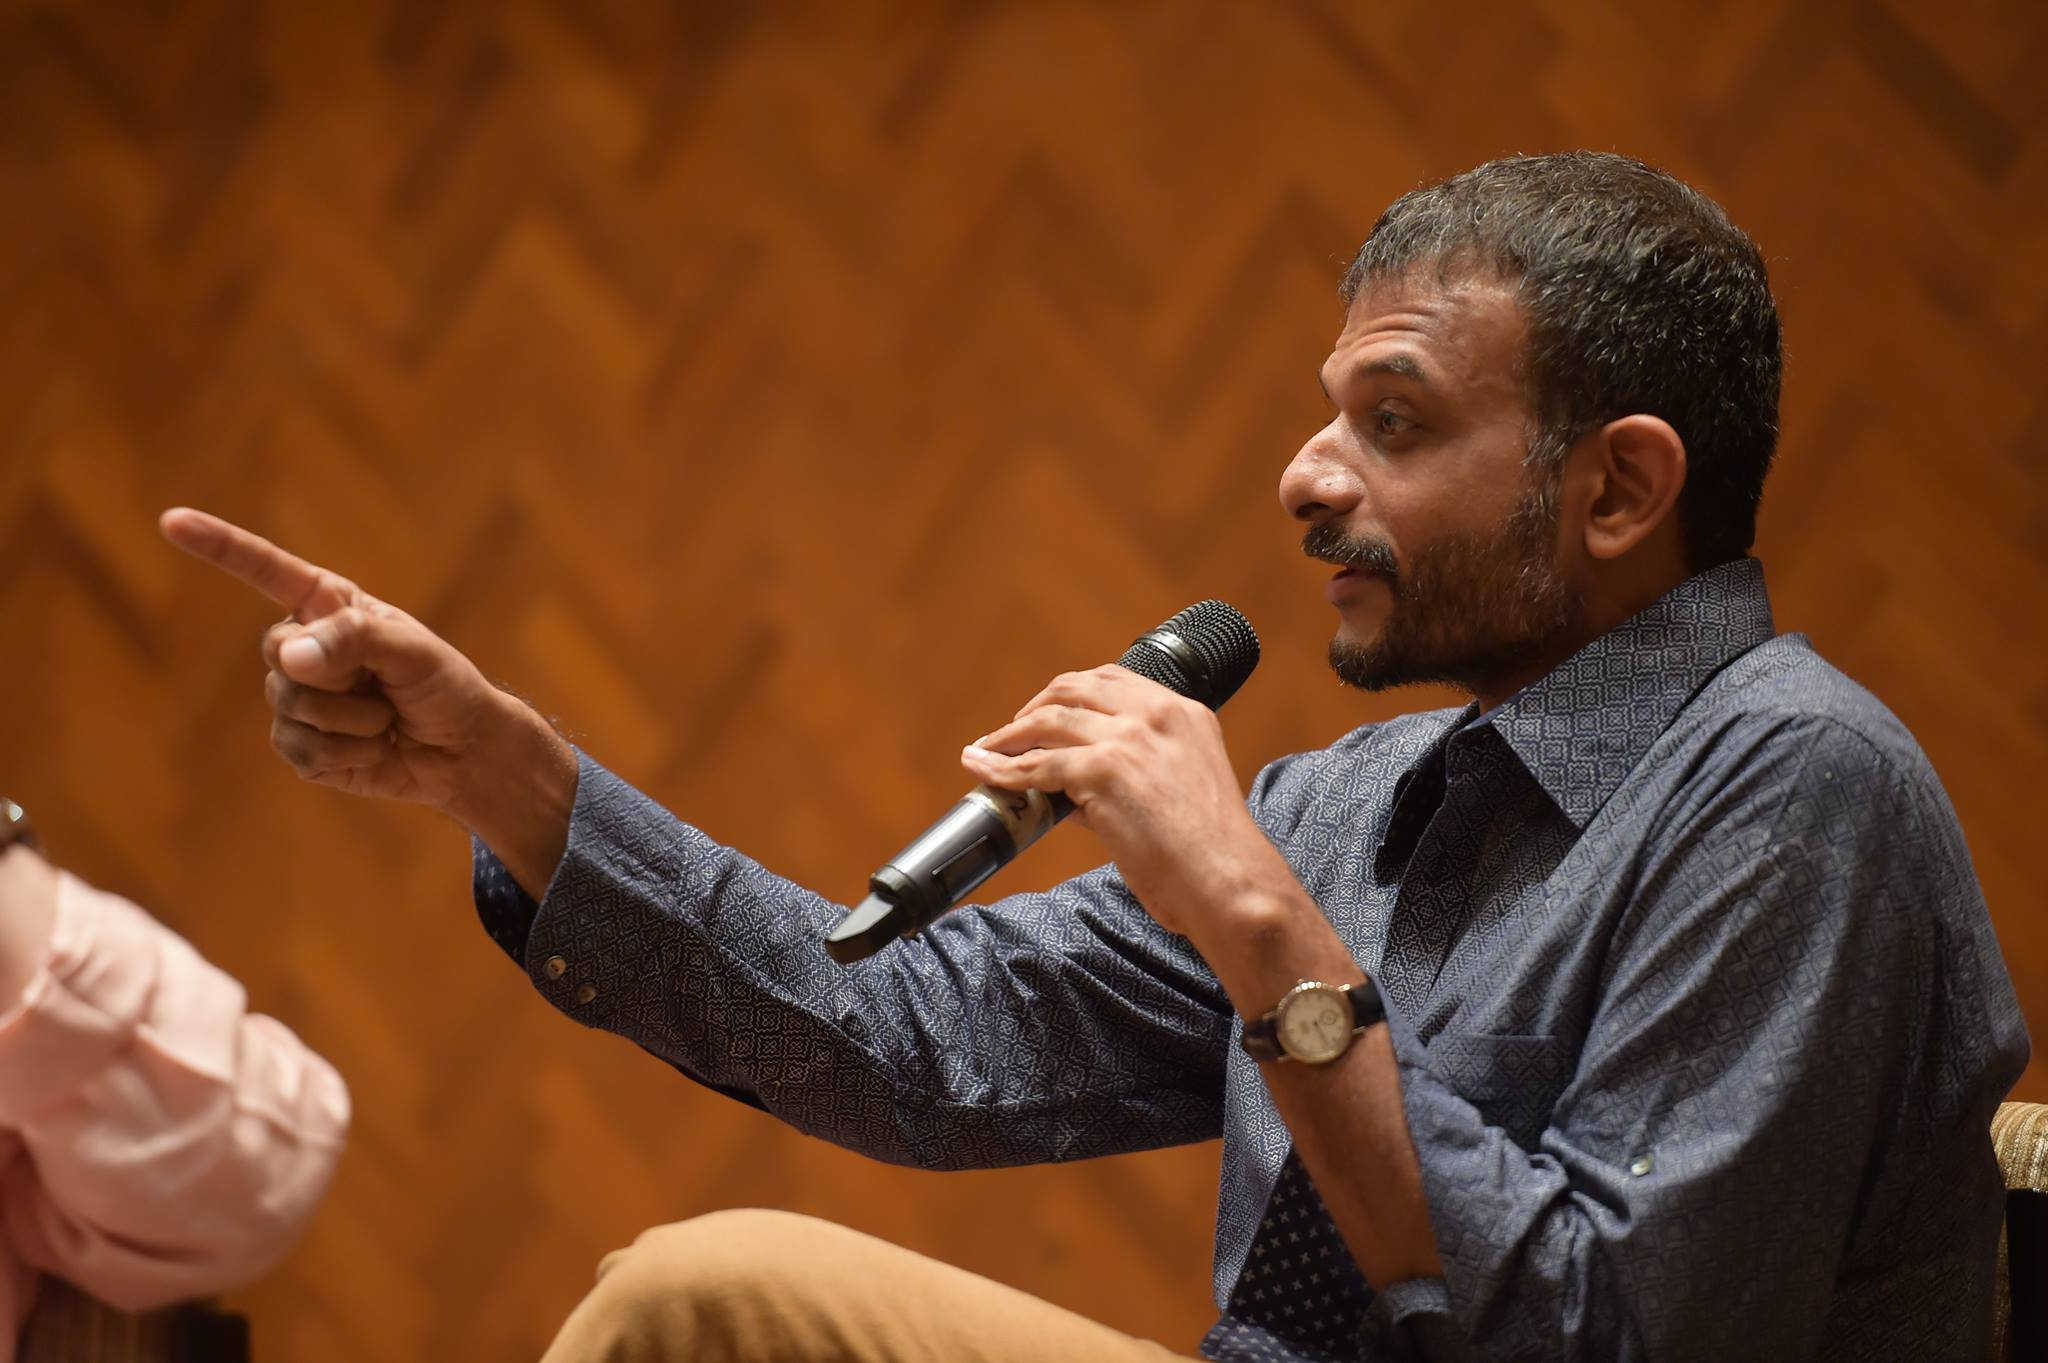 T.M. Krishna has lent his voice to help save Ennore Creek. Credit: Facebook